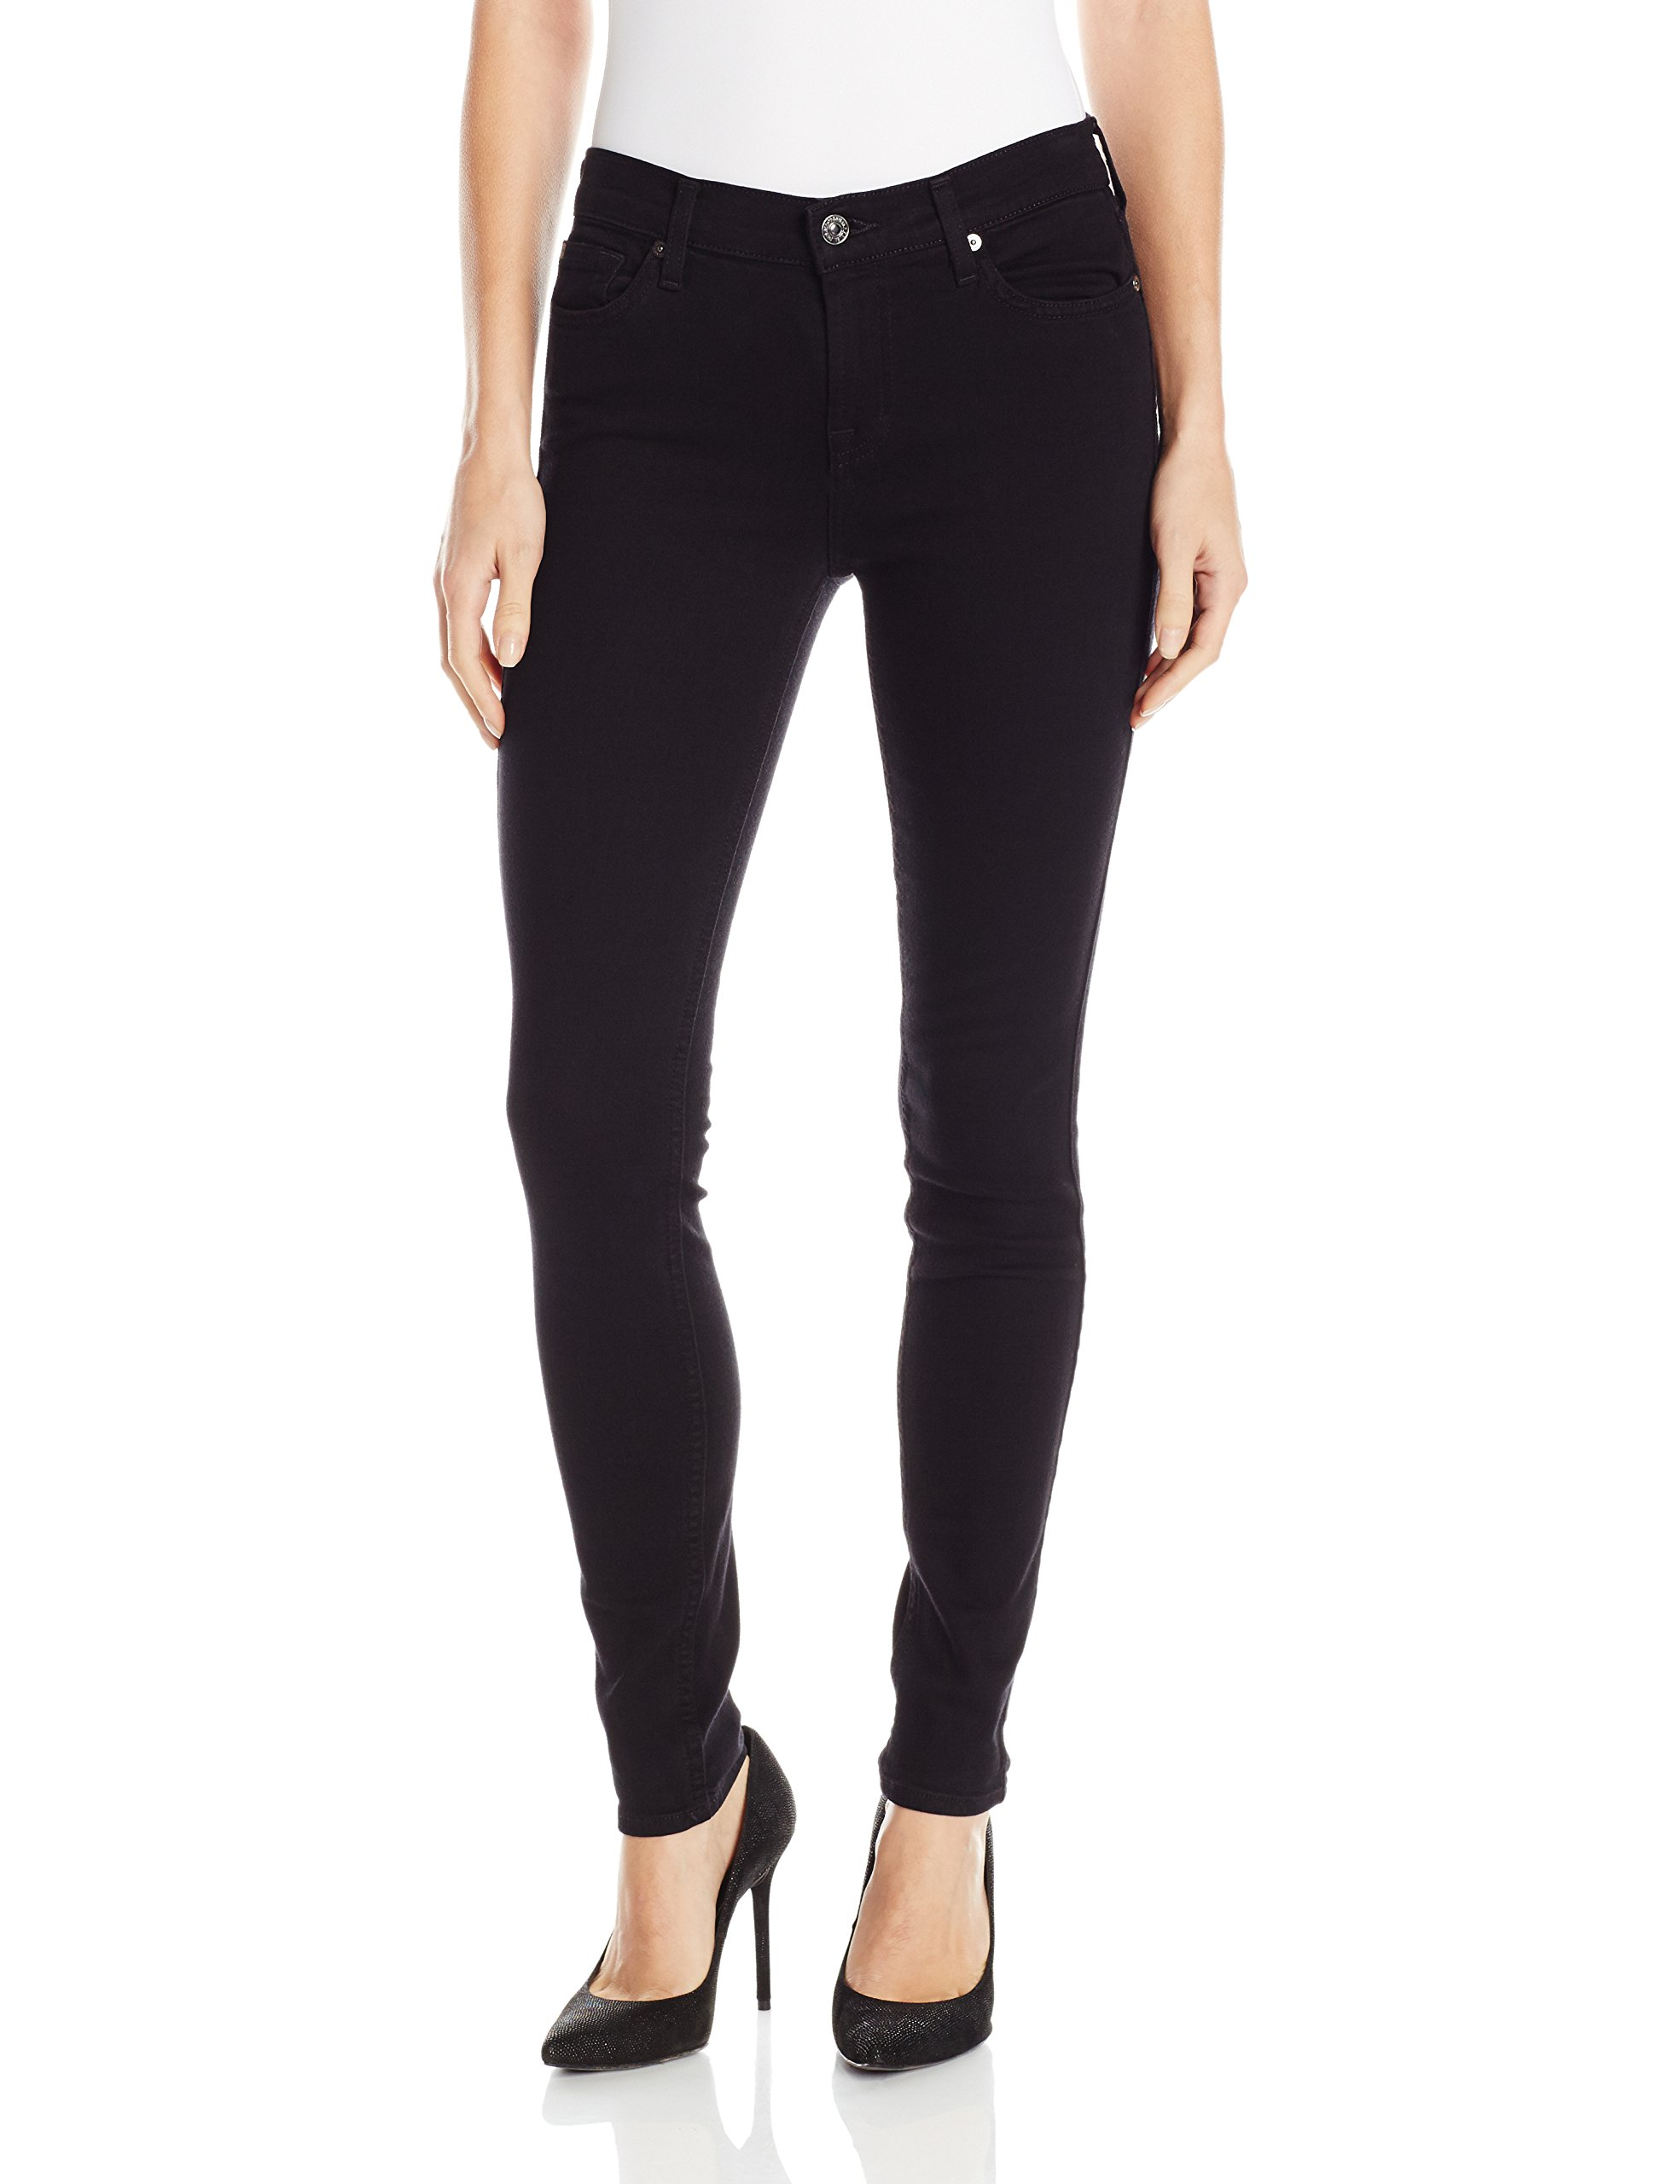 7 For All Mankind Women's The Skinny Jean, Washed Overdyed Black, 29